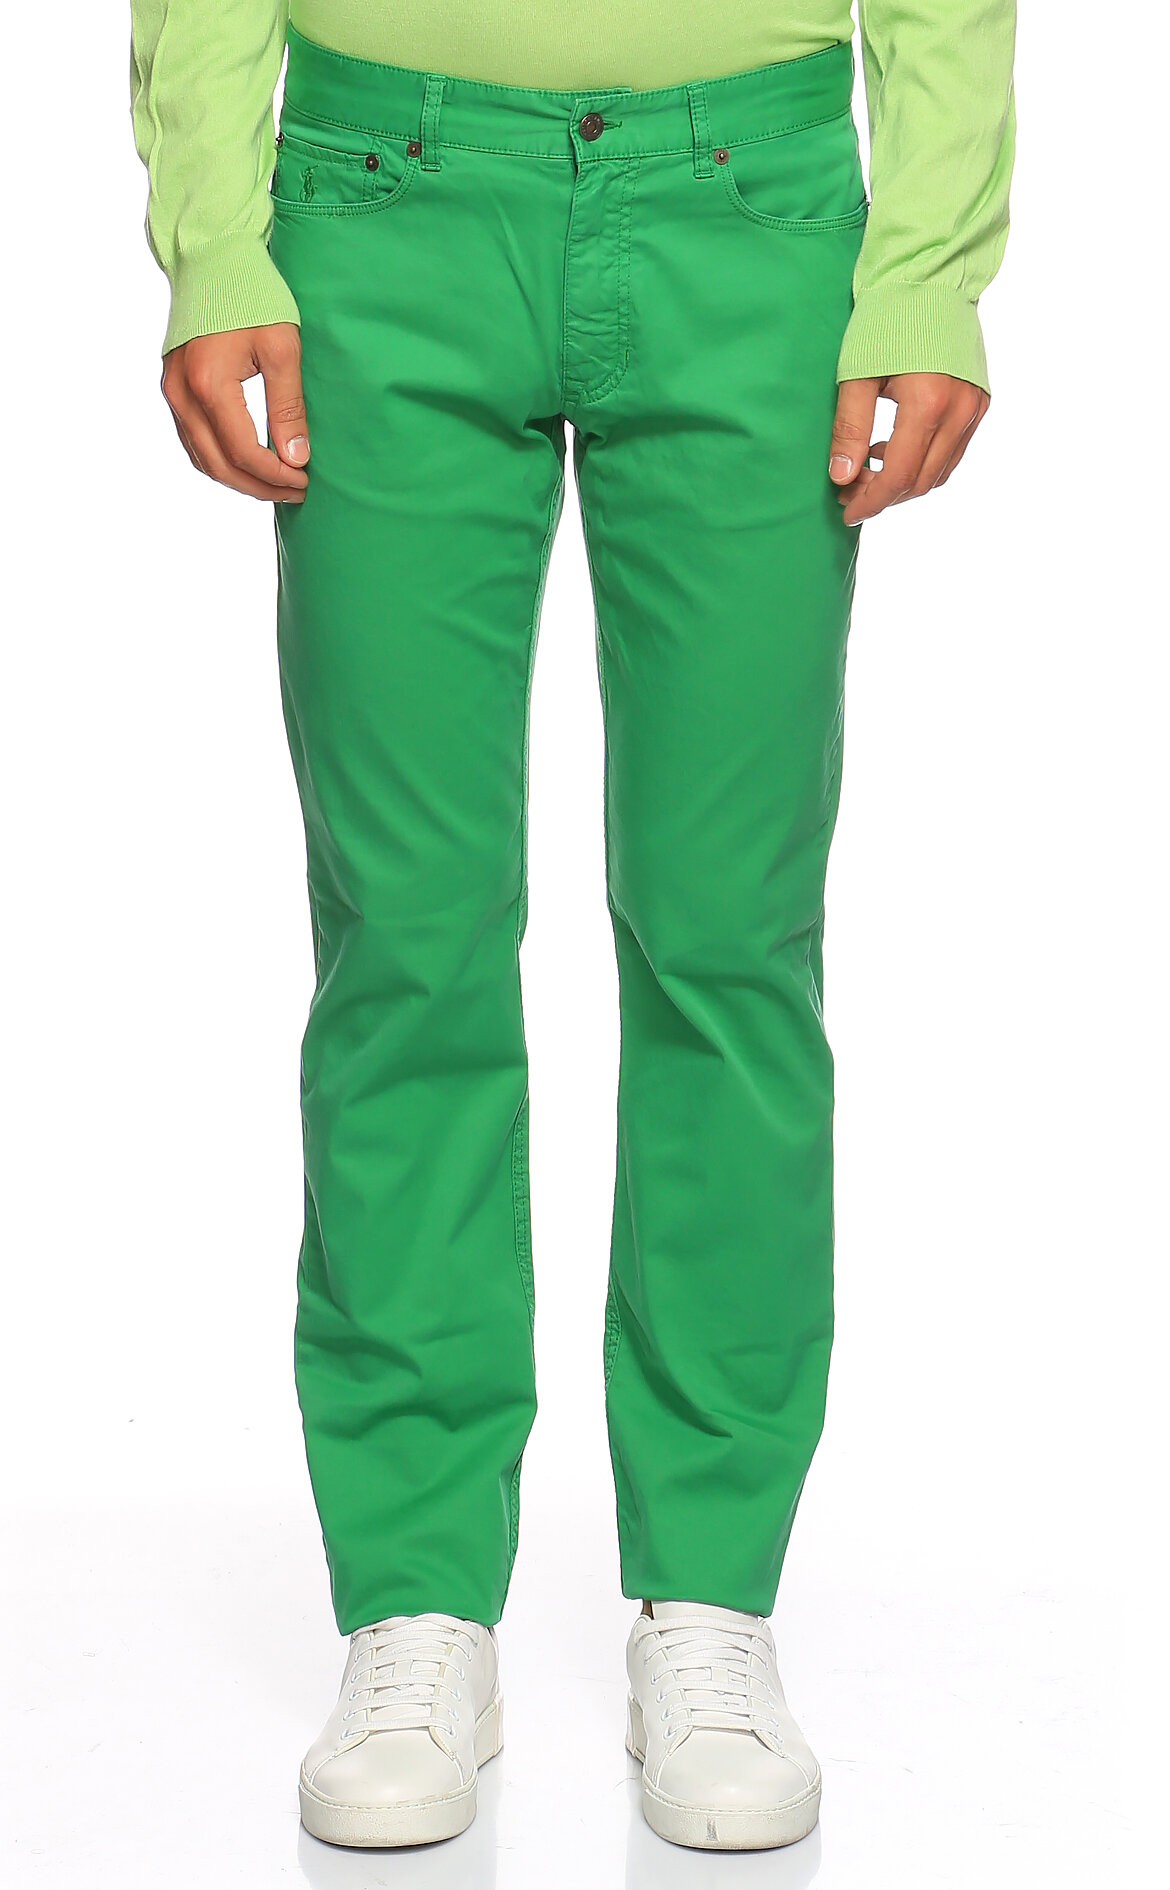 Ralph Lauren Blue Label-Ralph Lauren Blue Label Yeşil Pantolon